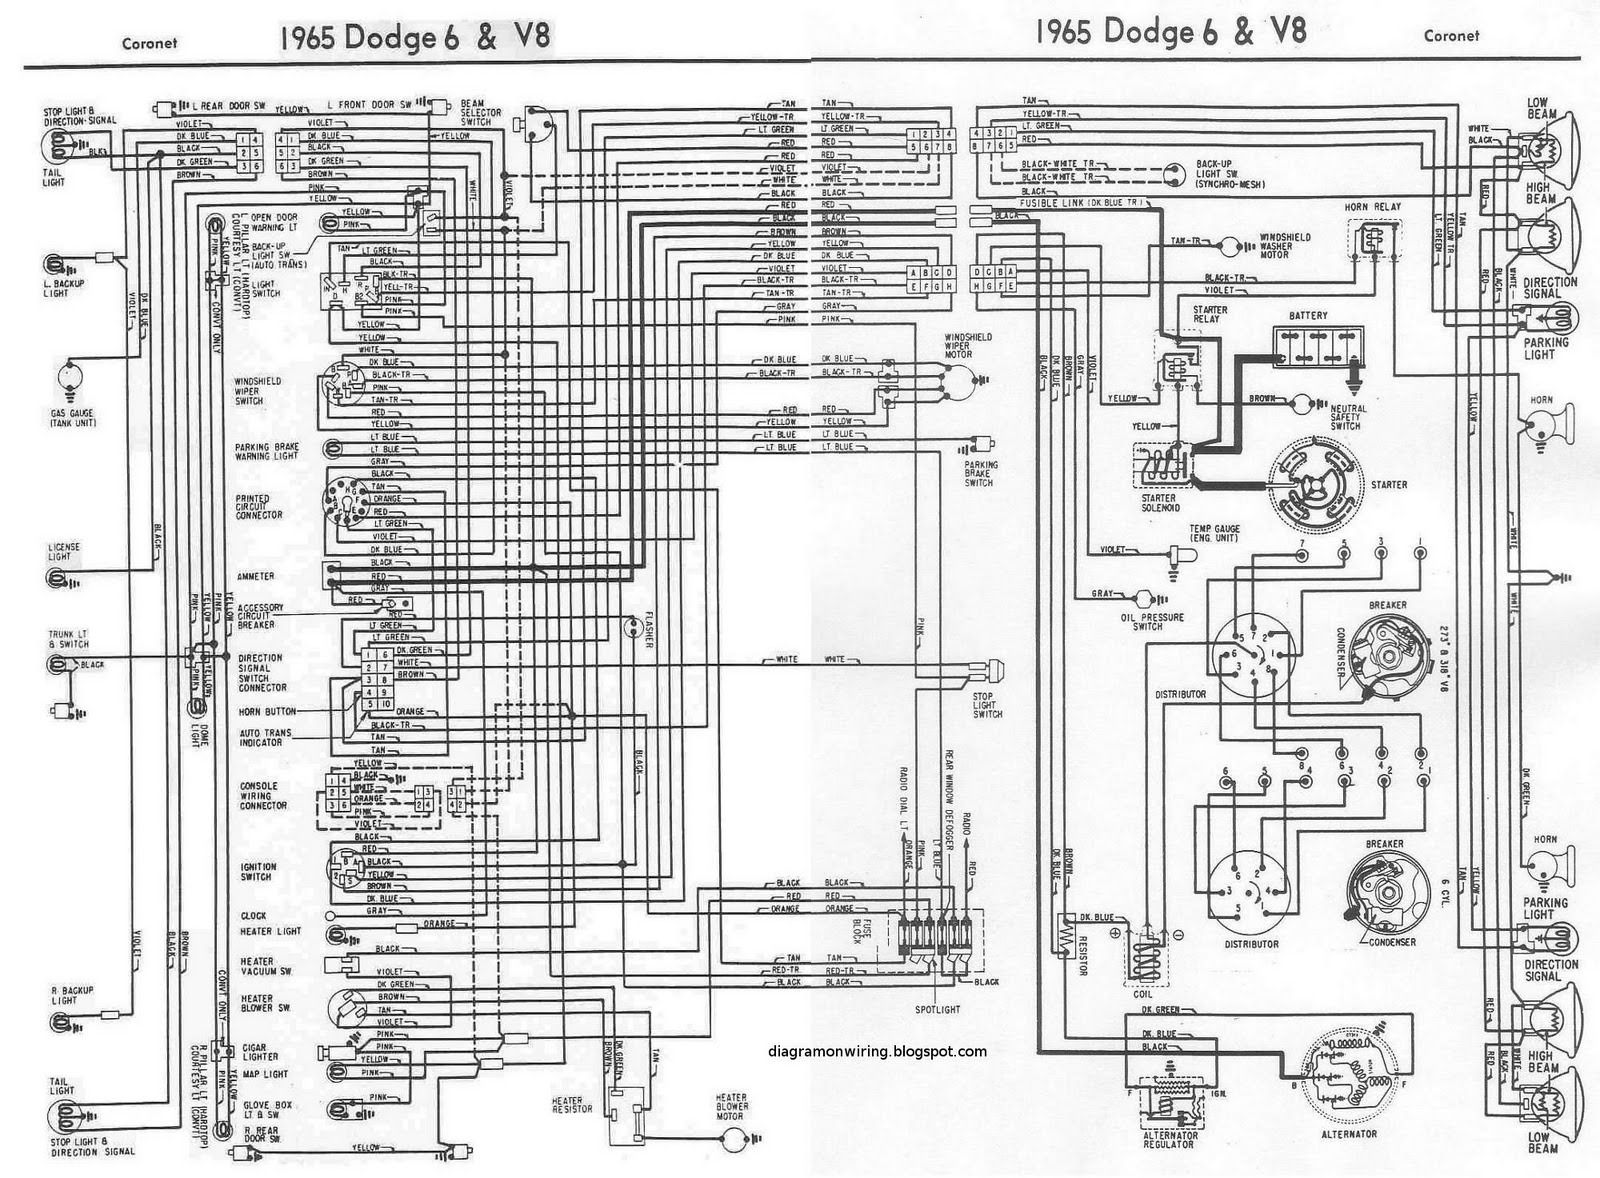 1969 Dodge Wiring Schematic Simple Schema Gmc Diagram For 1966 Coronet Todays Ram Ignition